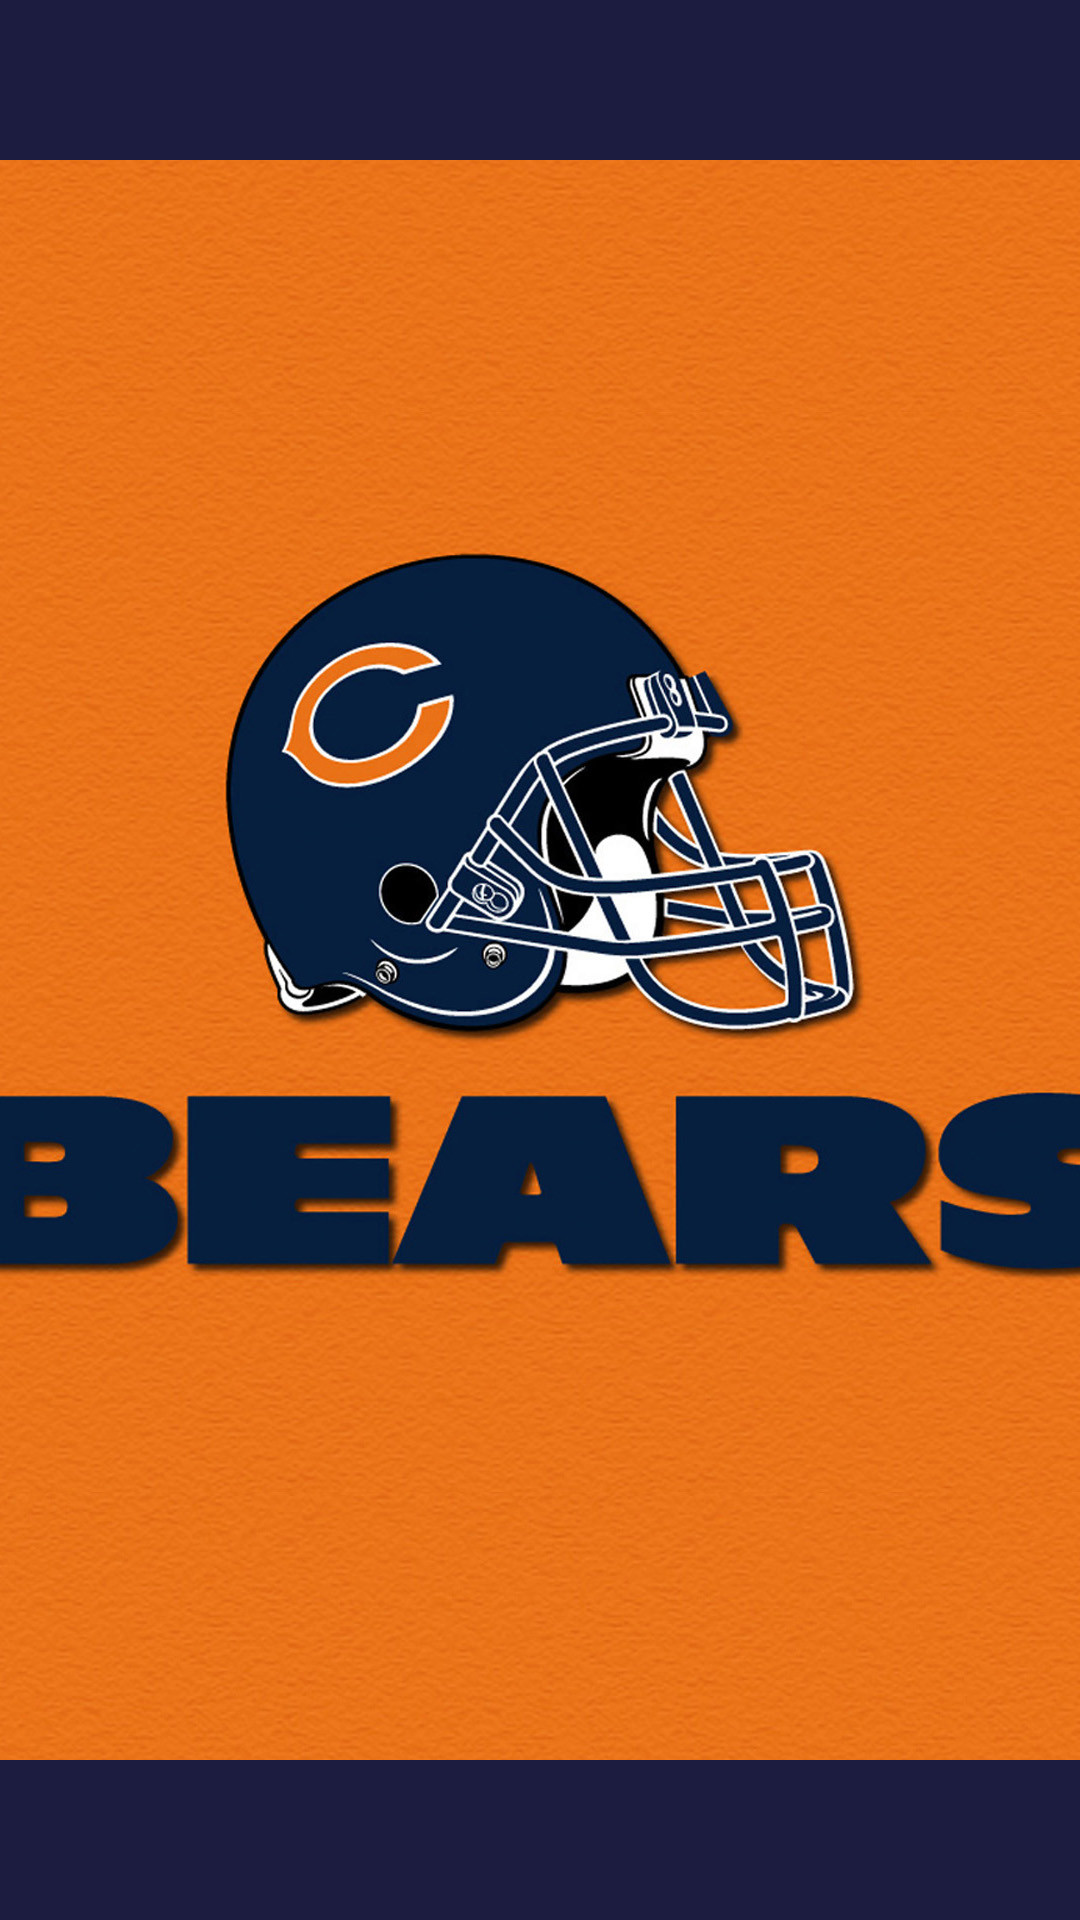 1080x1920 0 640x960 Chicago Bears iPhone Wallpaper HD  Chicago Bears iPhone  Wallpapers